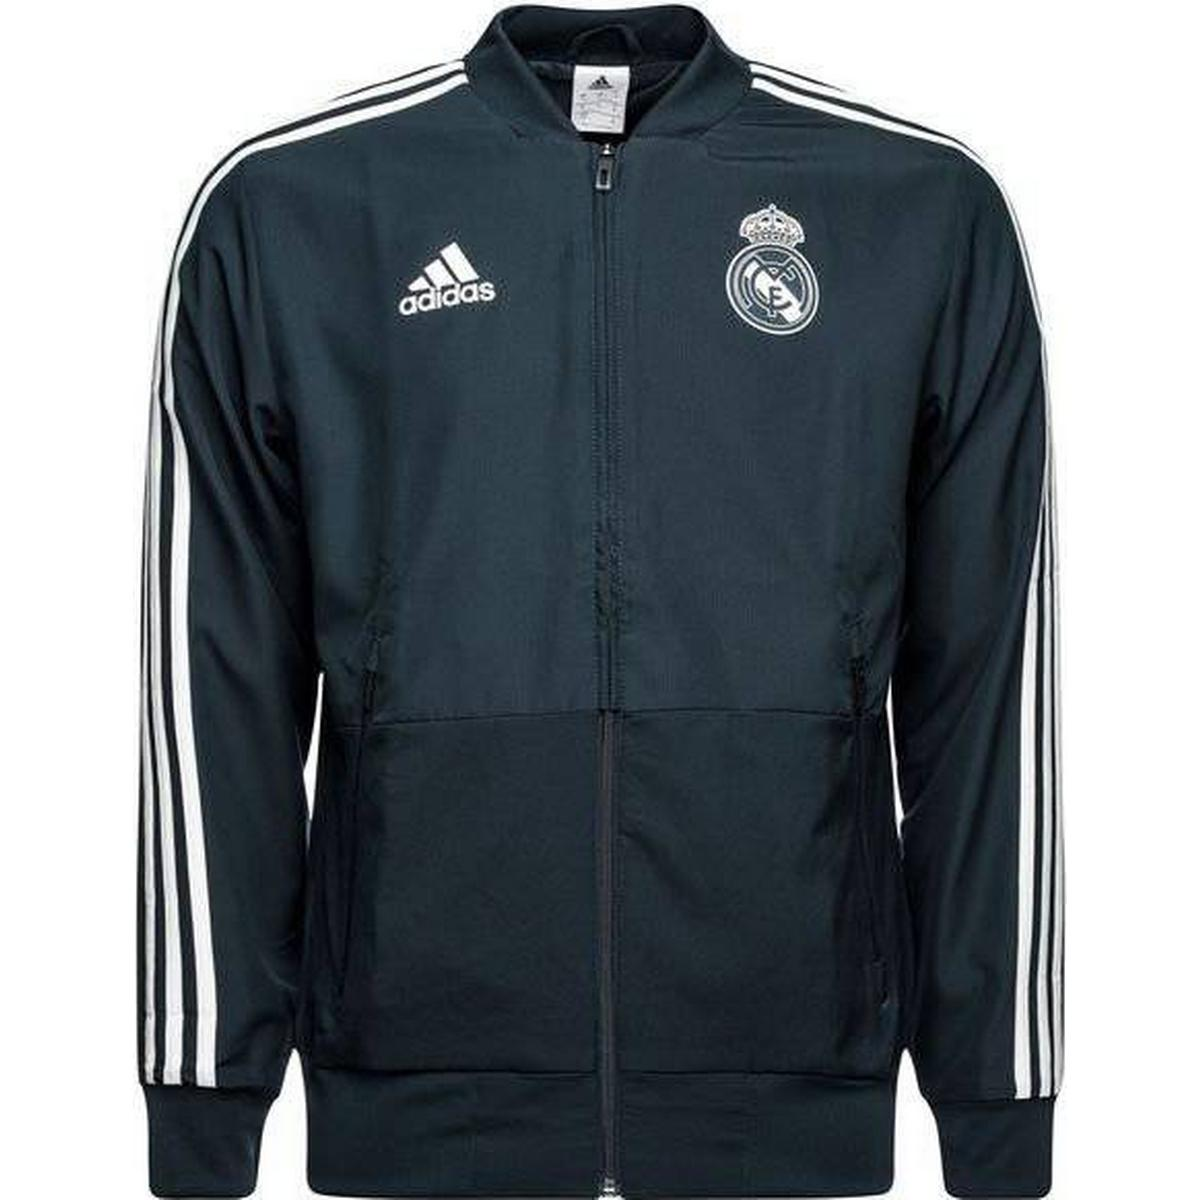 2013 14 Real Madrid adidas Anthem Track Jacket *BNIB* for